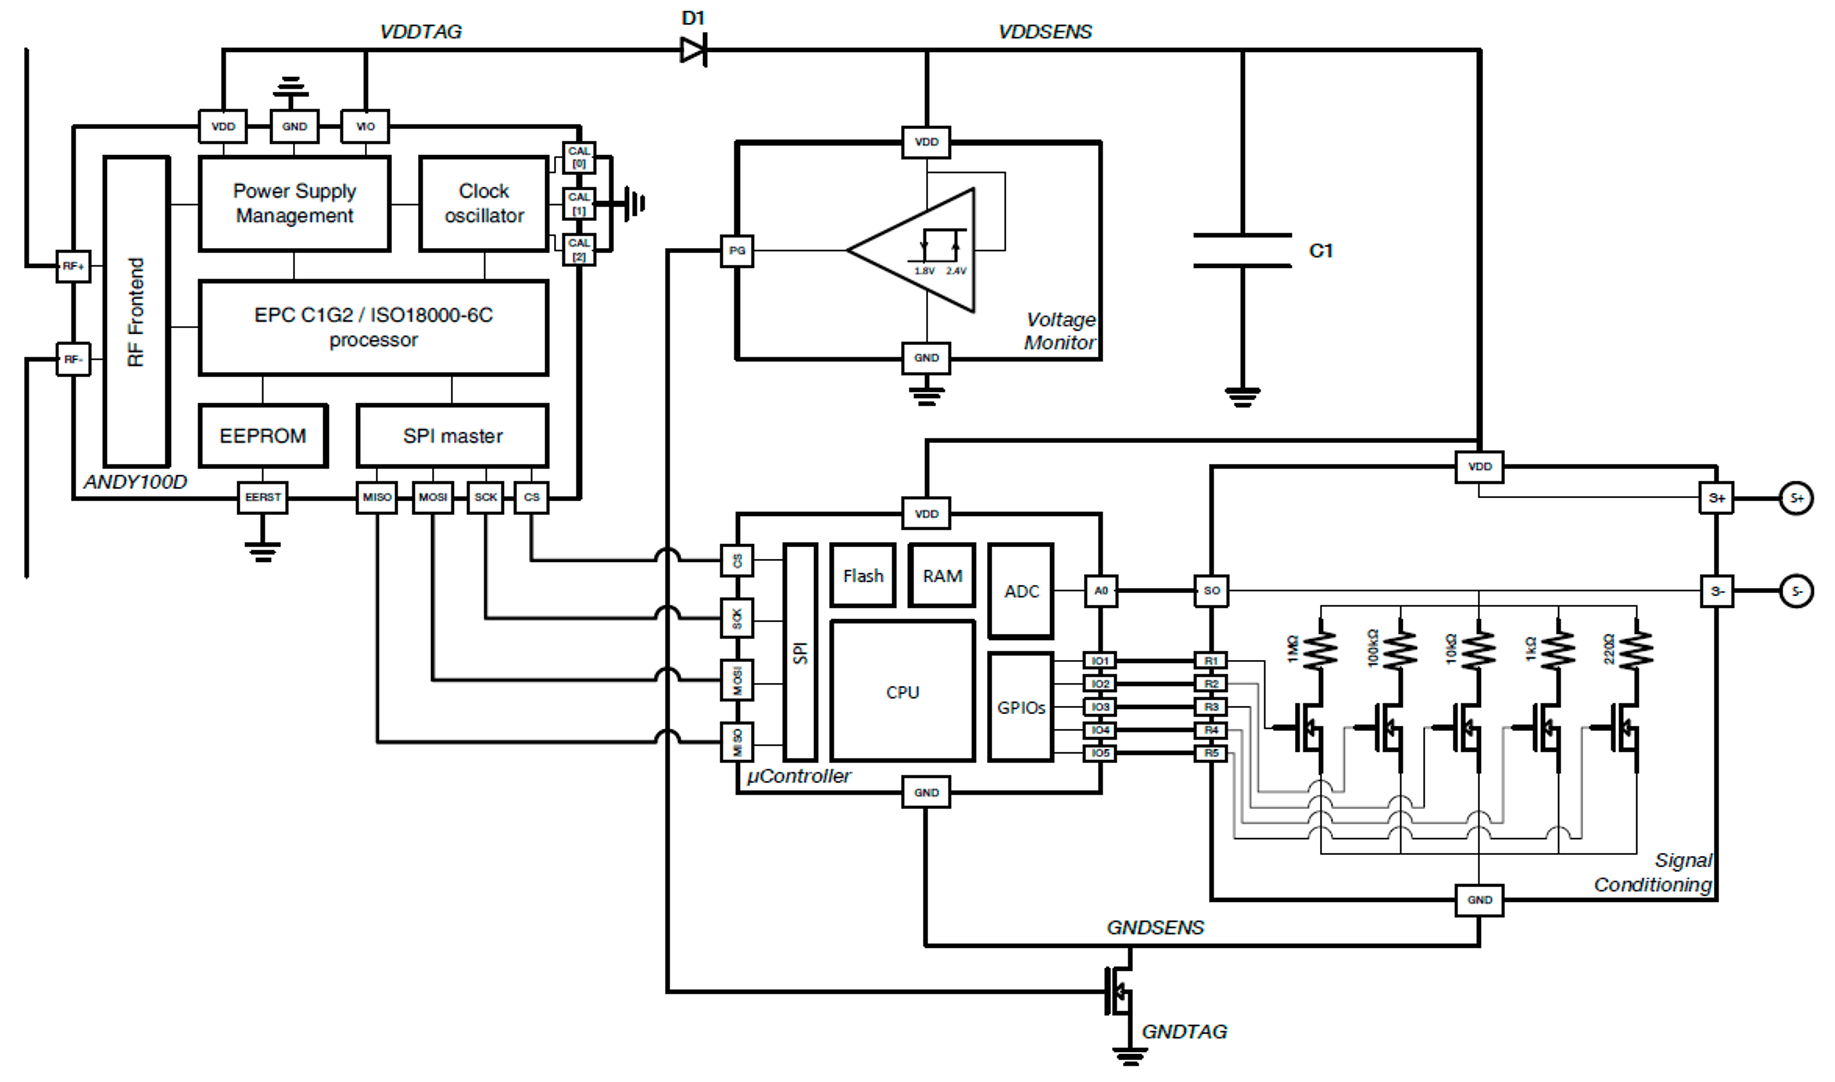 hamer wiring diagrams